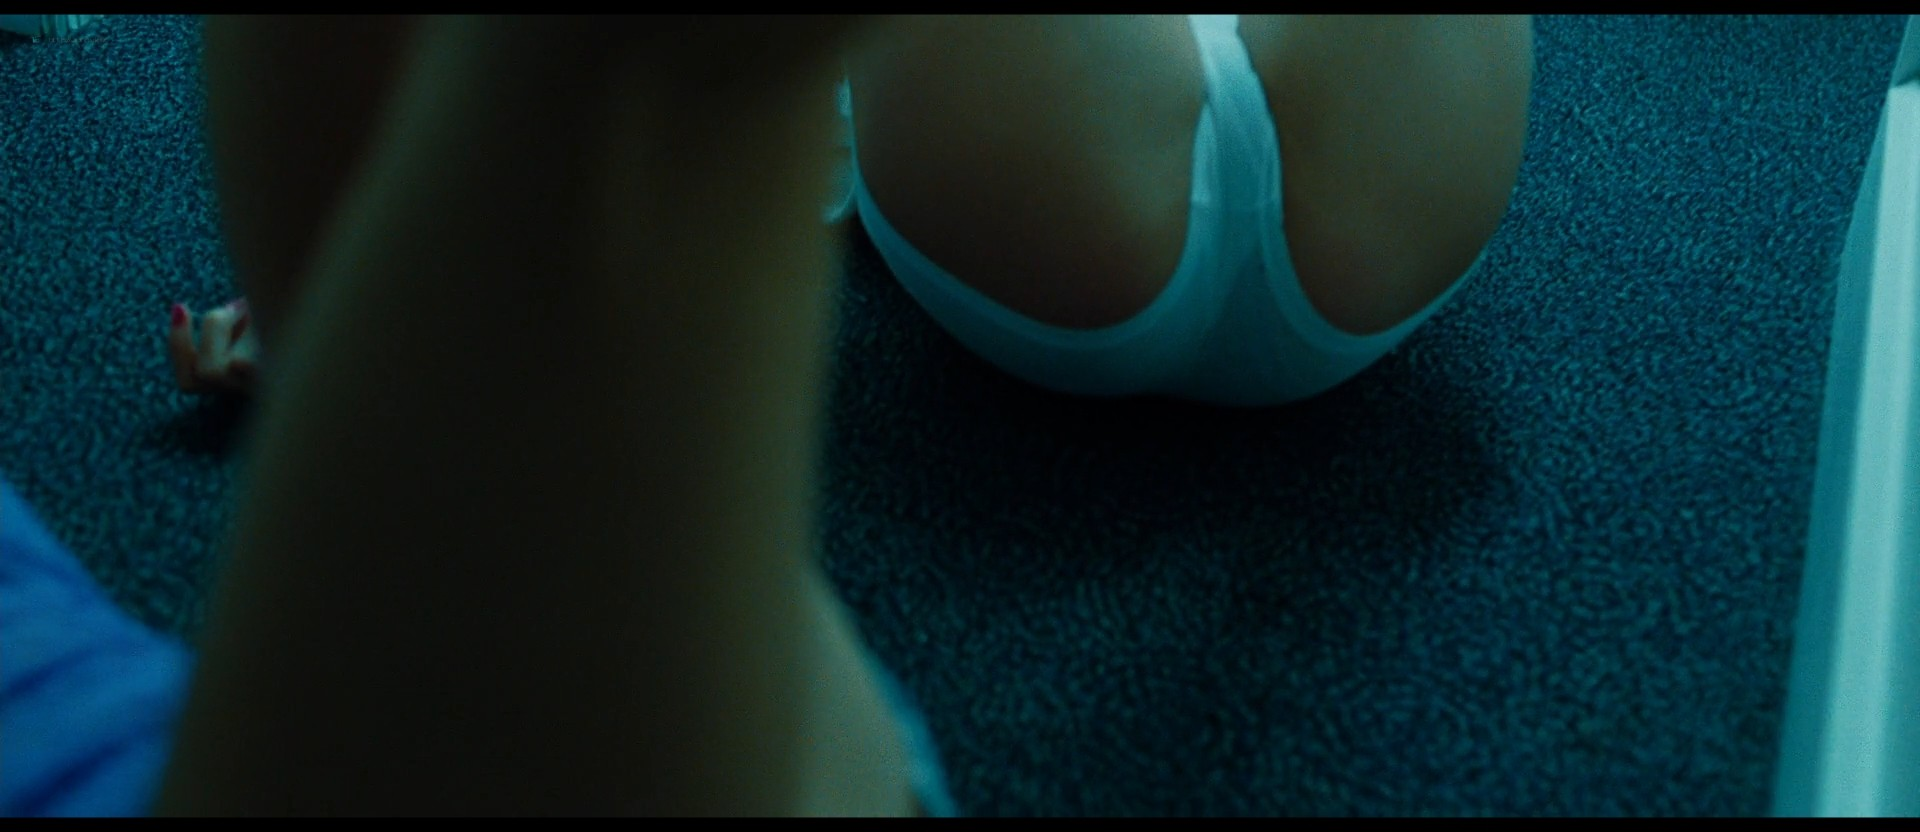 Ashley Benson nude skinny dipping others nude too - Spring Breakers (2012) HD 1080p BluRay (32)